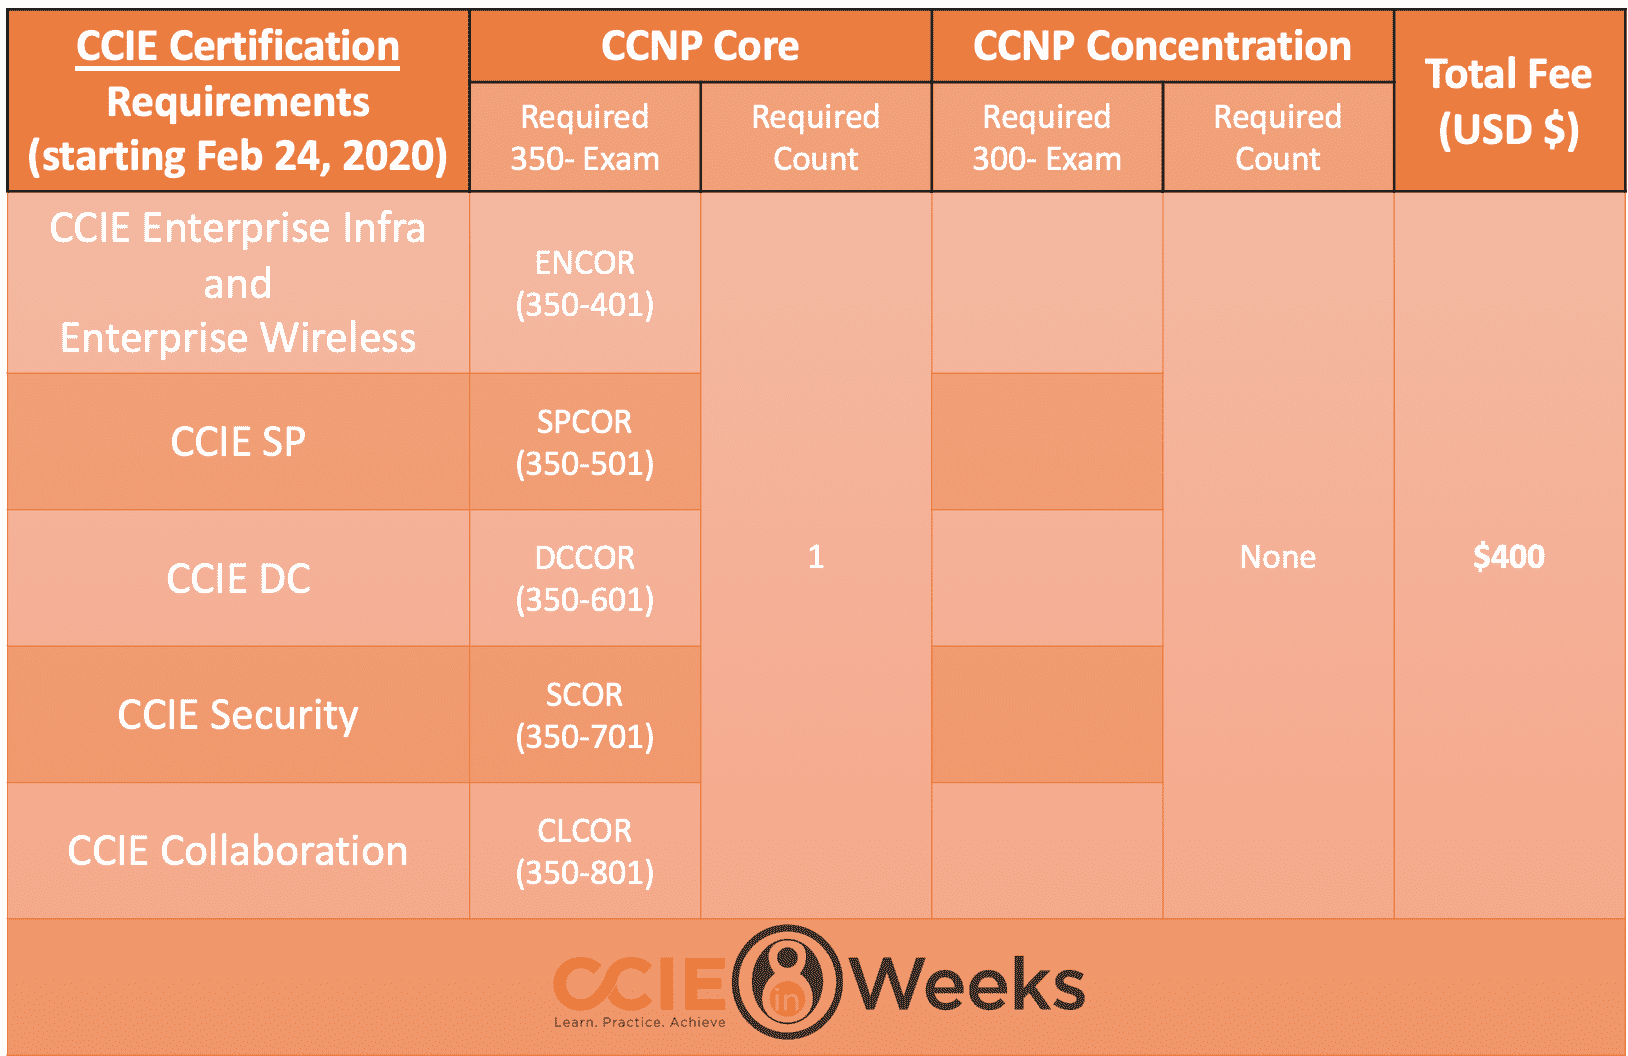 ccie next-level certification requirements and options